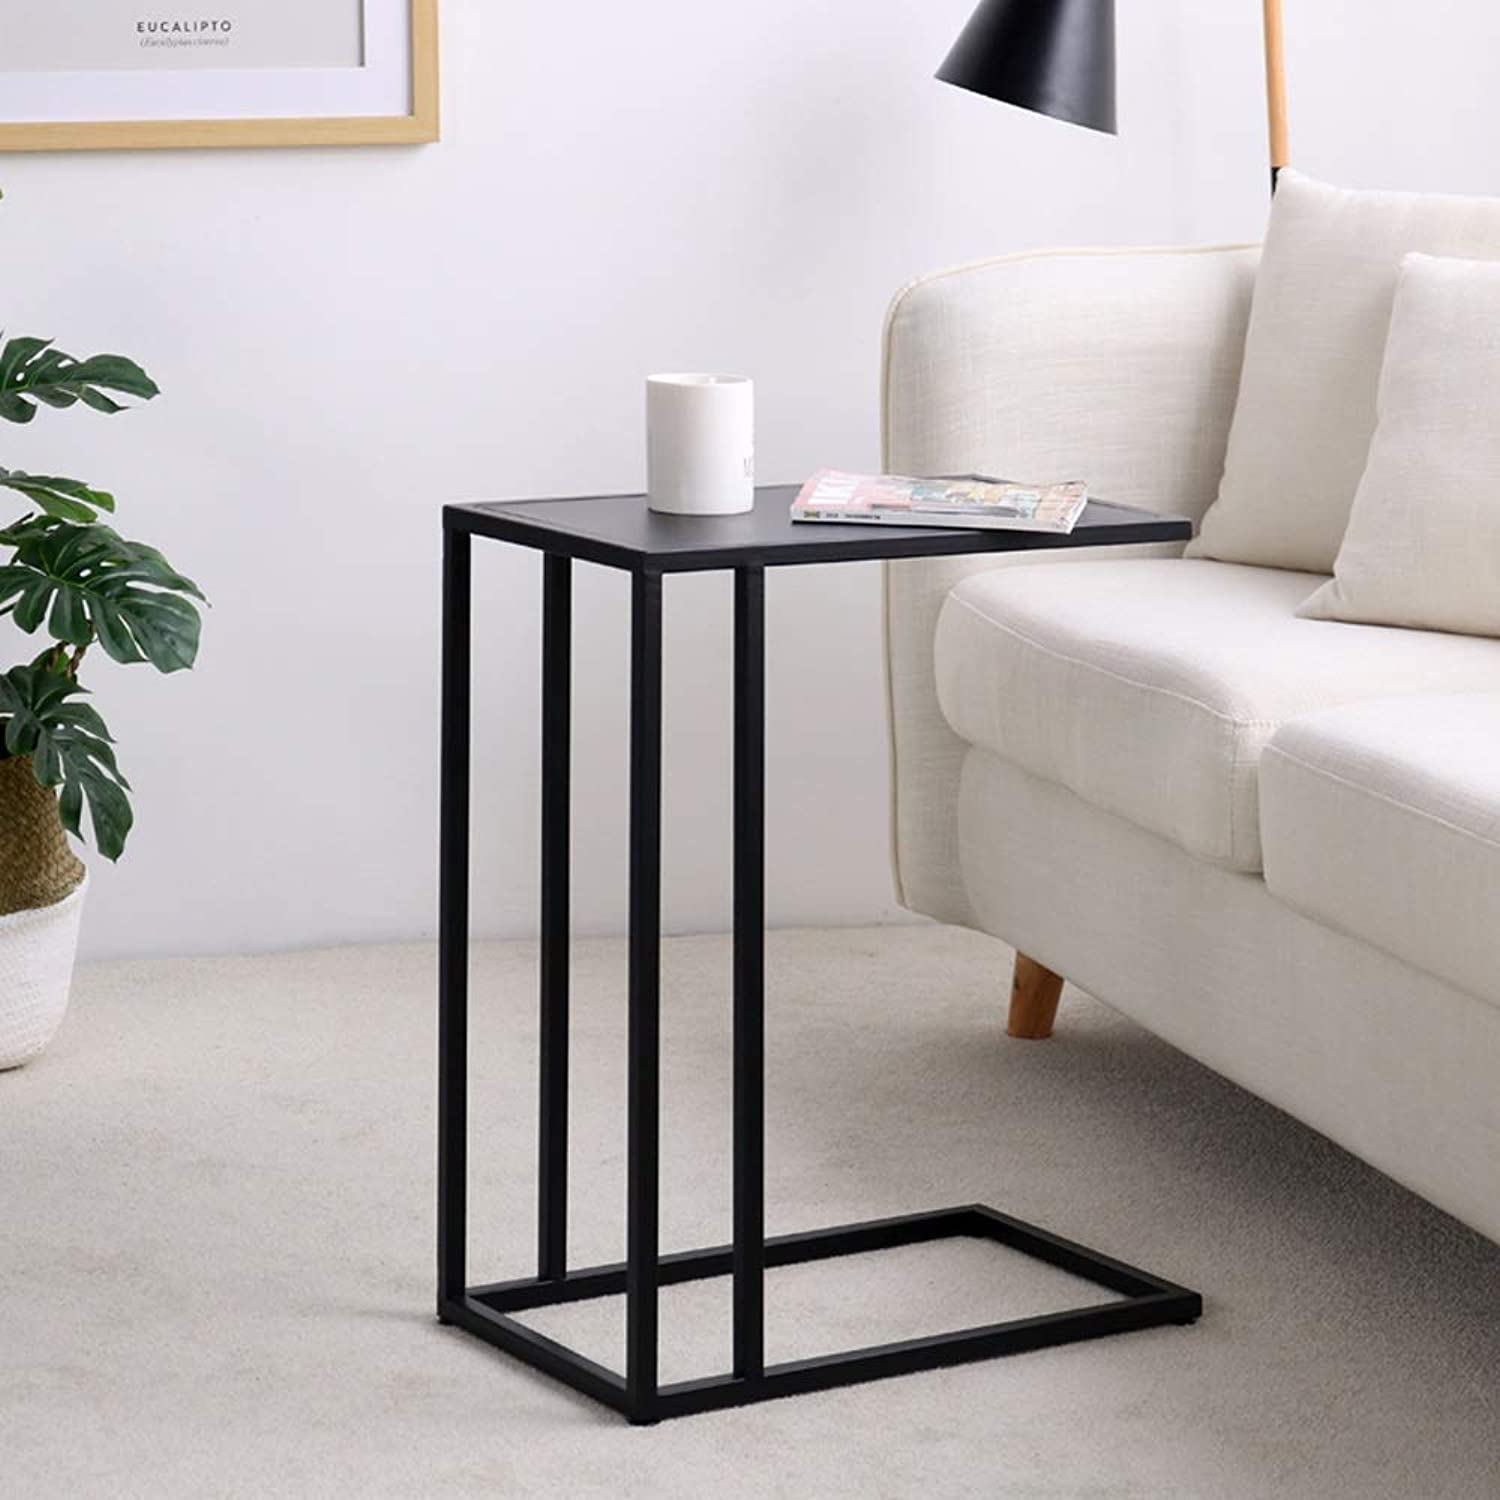 End Tables Black Living Room Side Table Couch Sofa Iron Bedroom Bedside for Bathroom Small Spaces Office Outdoor Indoor Decor Furniture